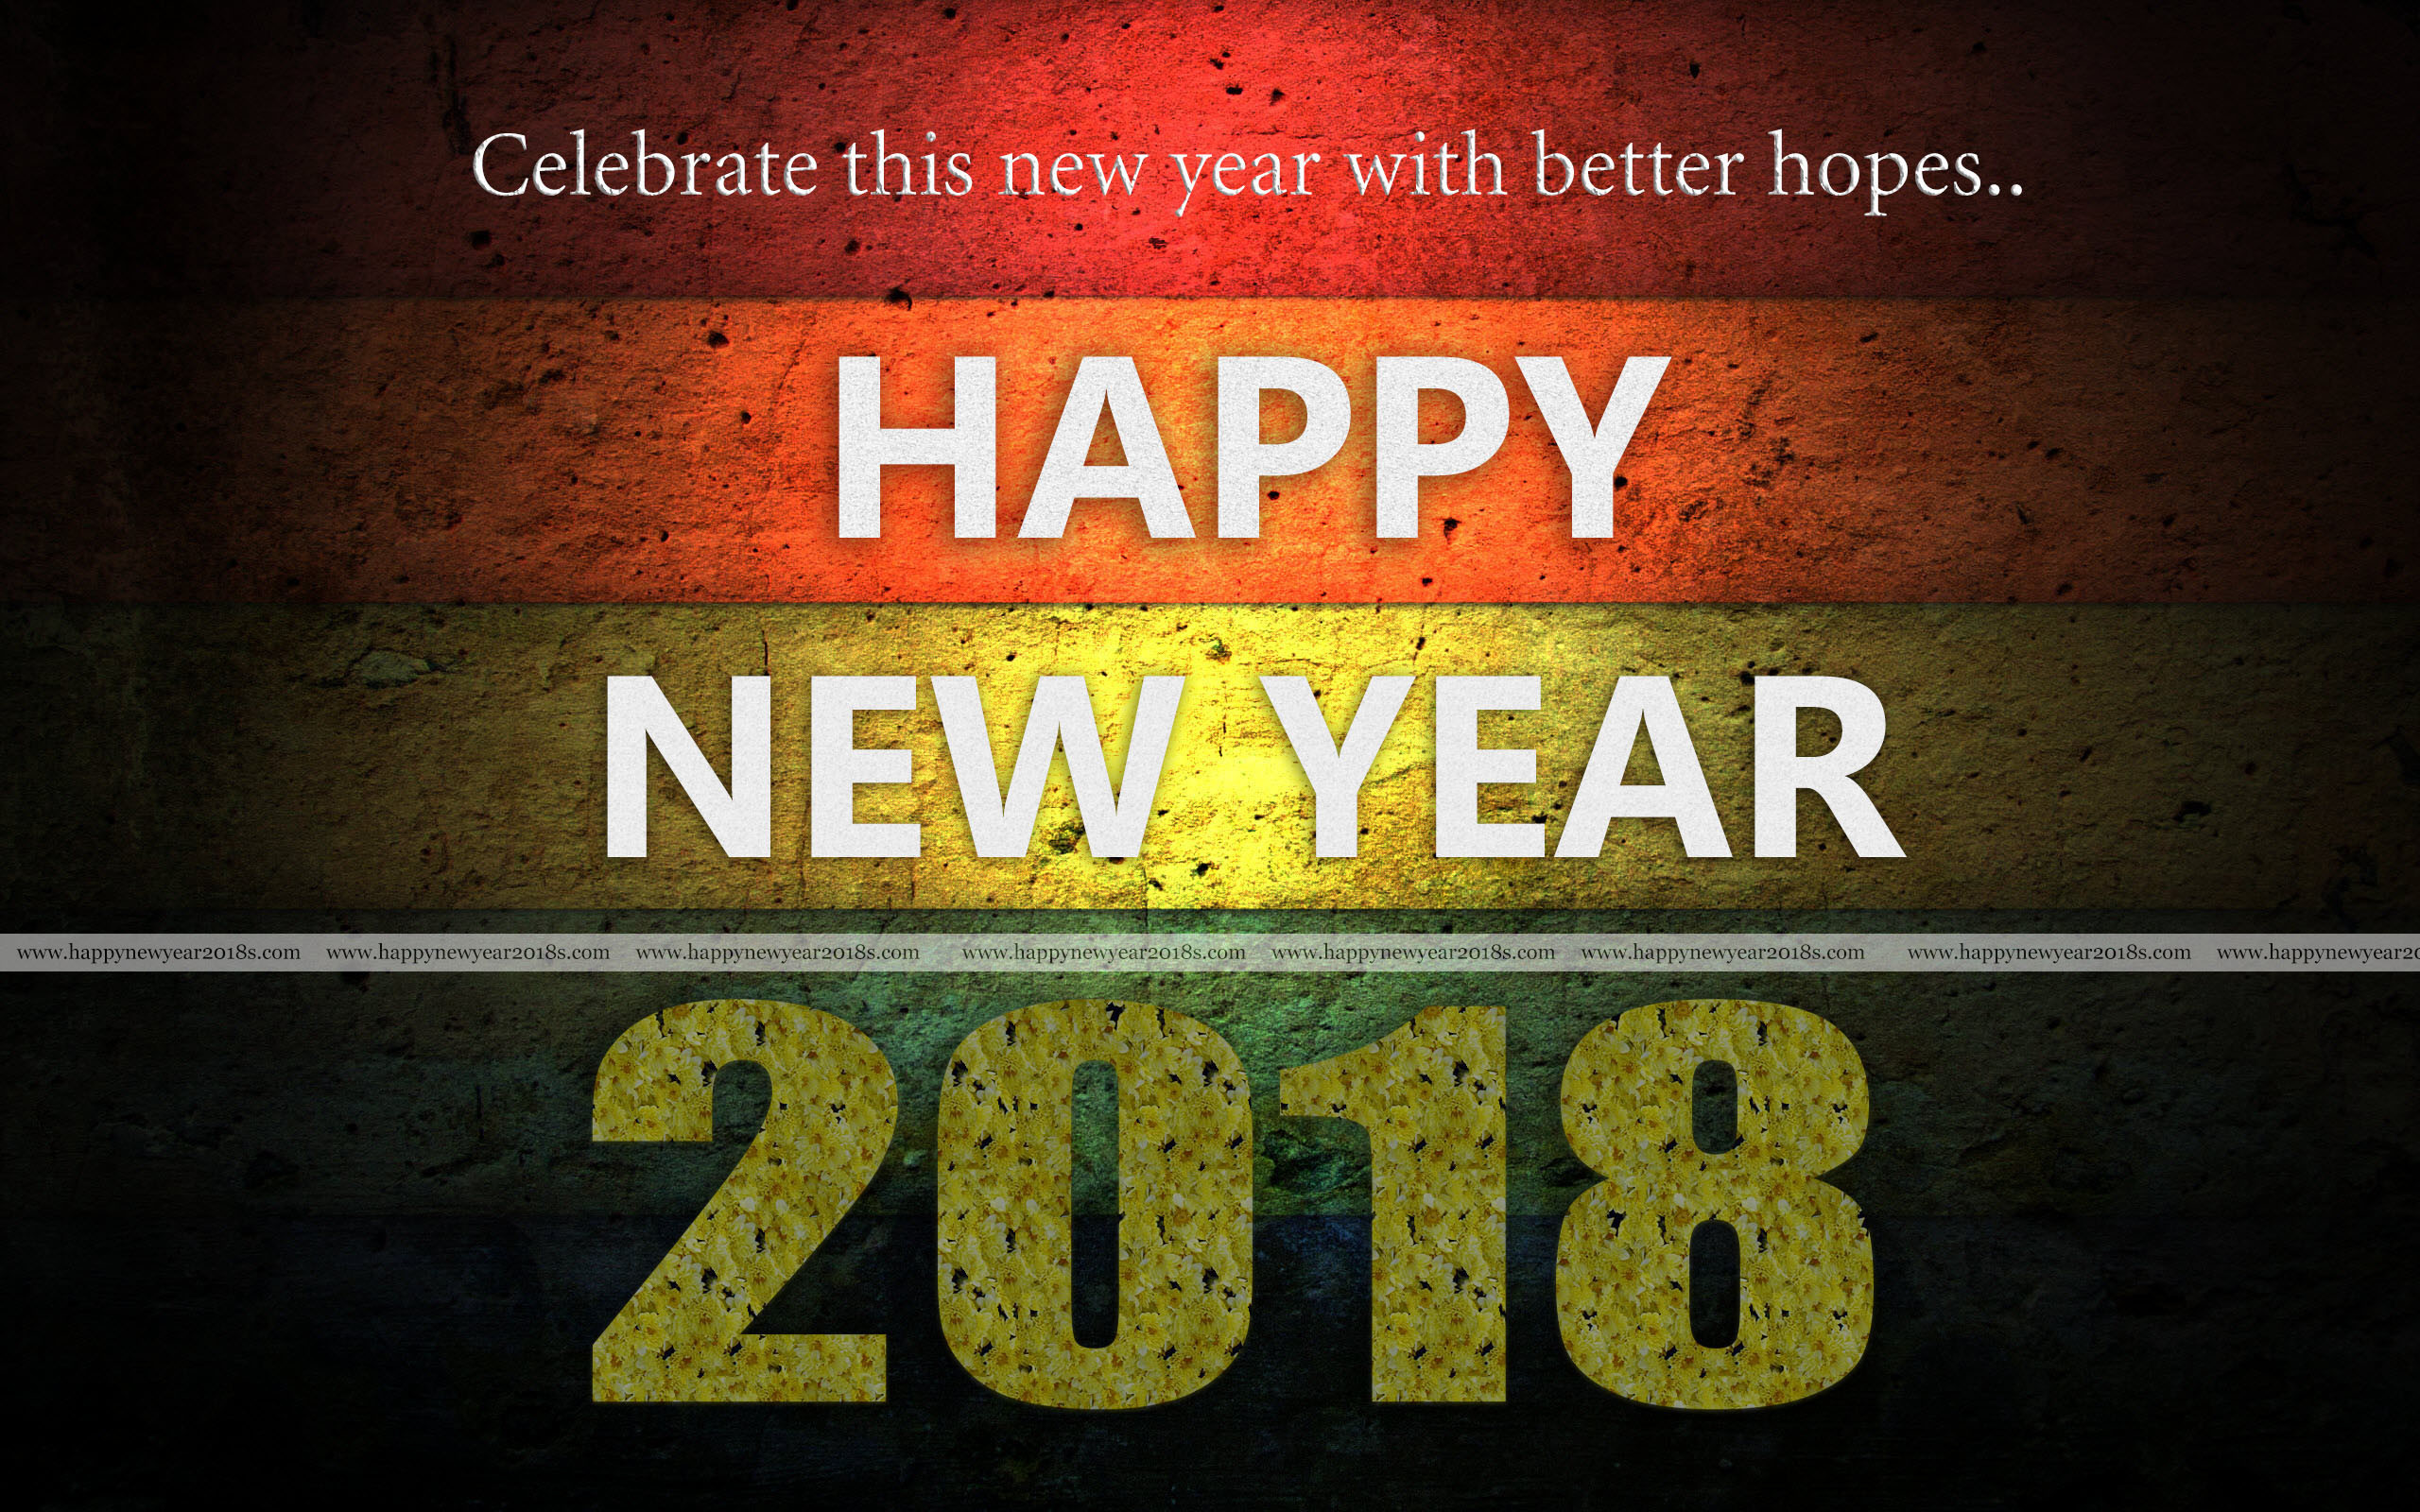 Hindi Romantic Love Wallpapers With Quotes New Happy New Year 2018 Wallpaper 78 Images